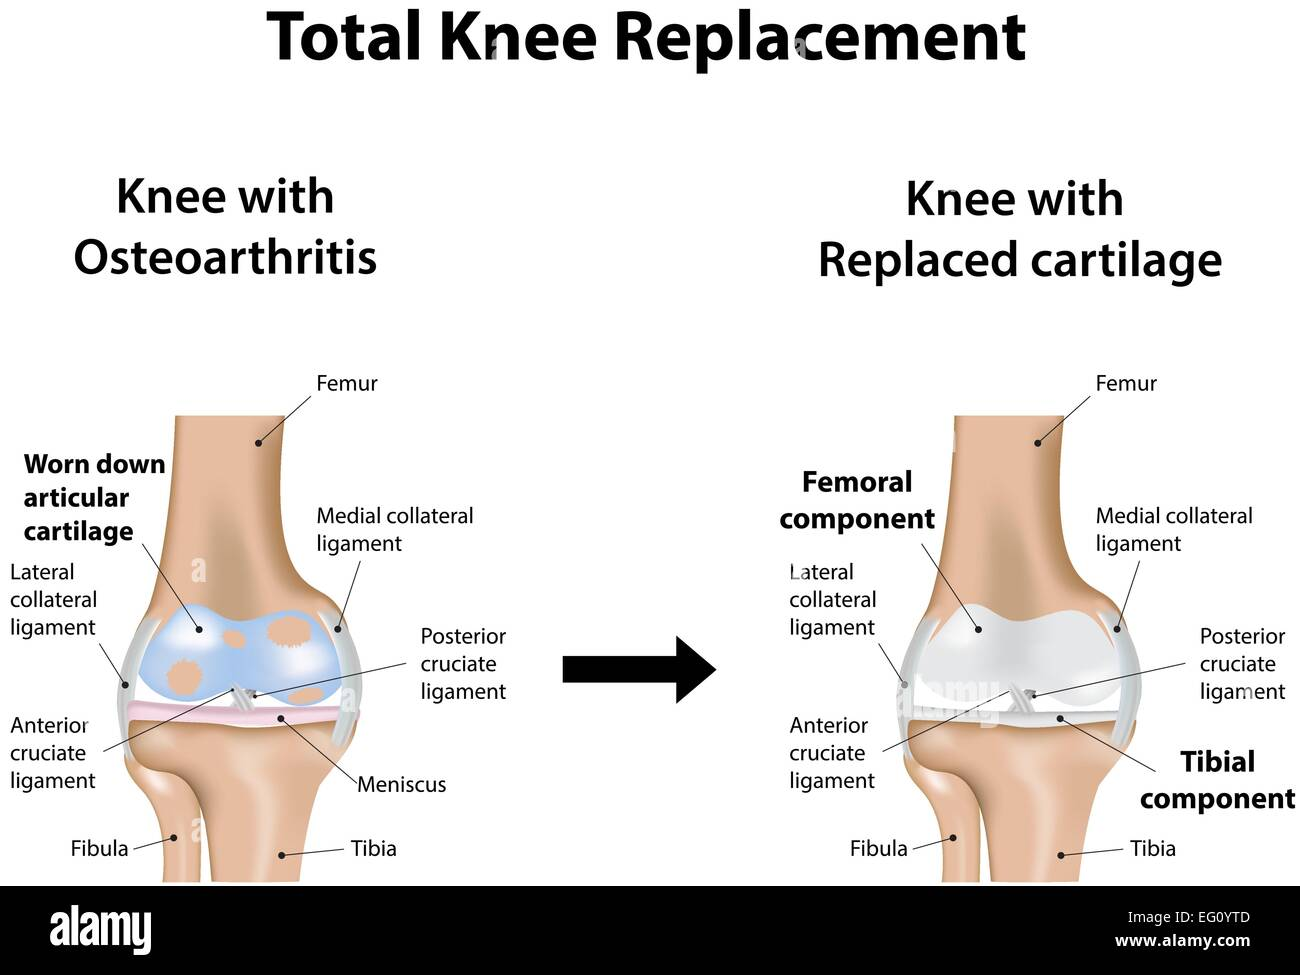 Total Knee Replacement - Stock Image